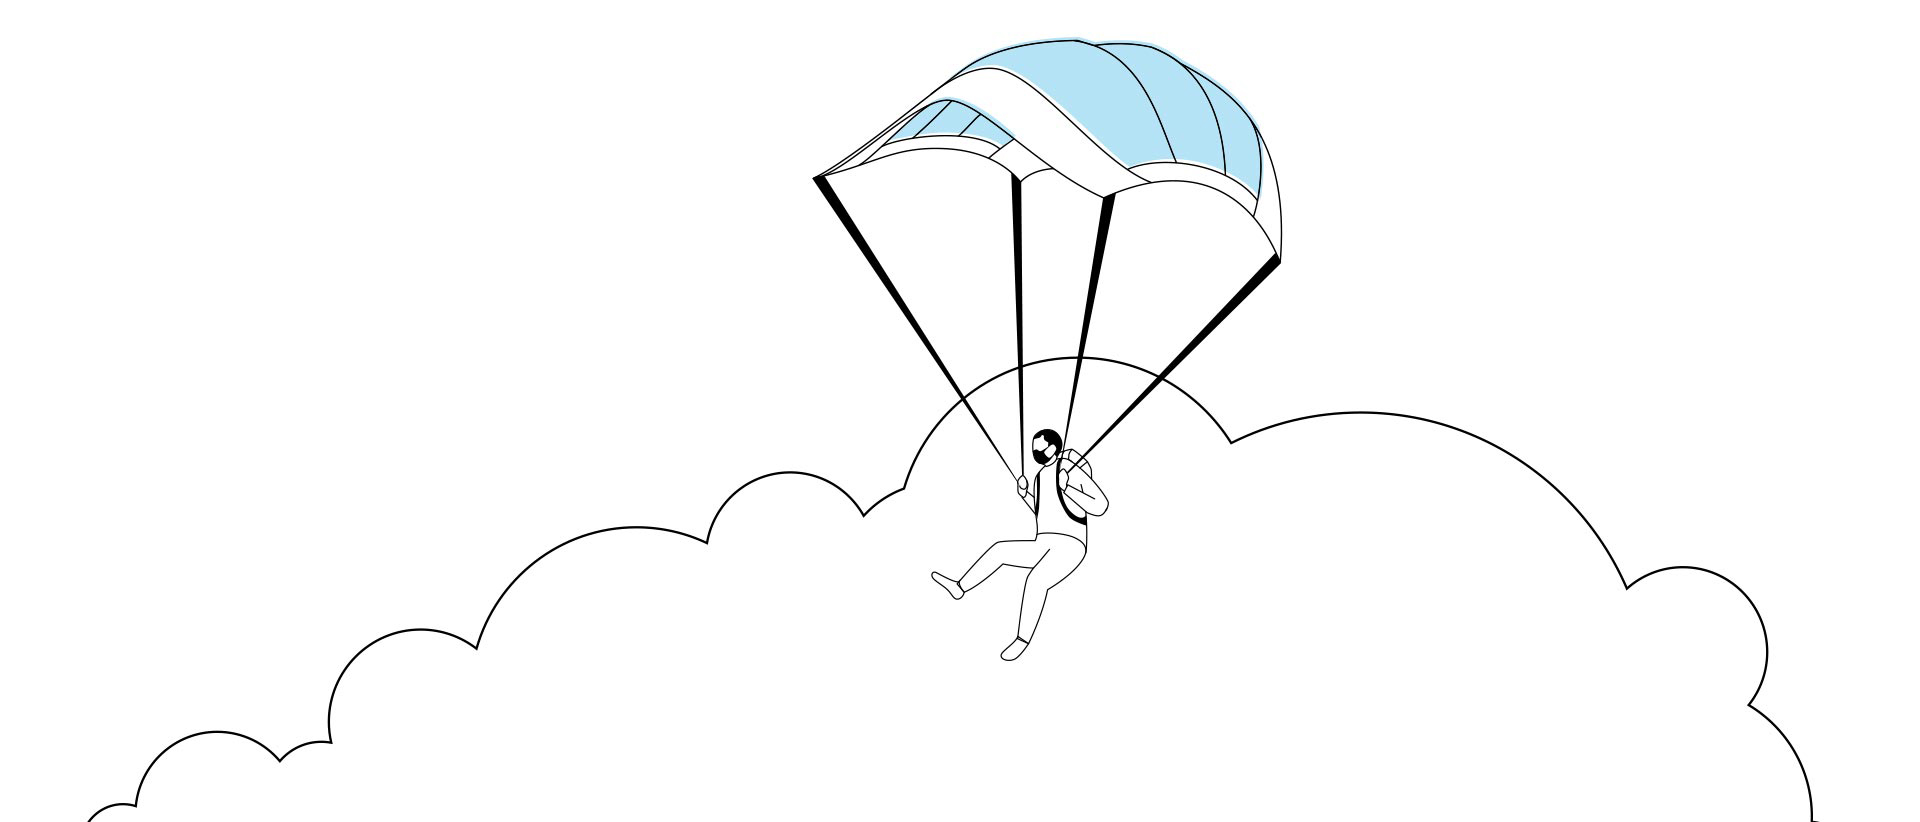 Illustration of a student using a medical mask as a parachute